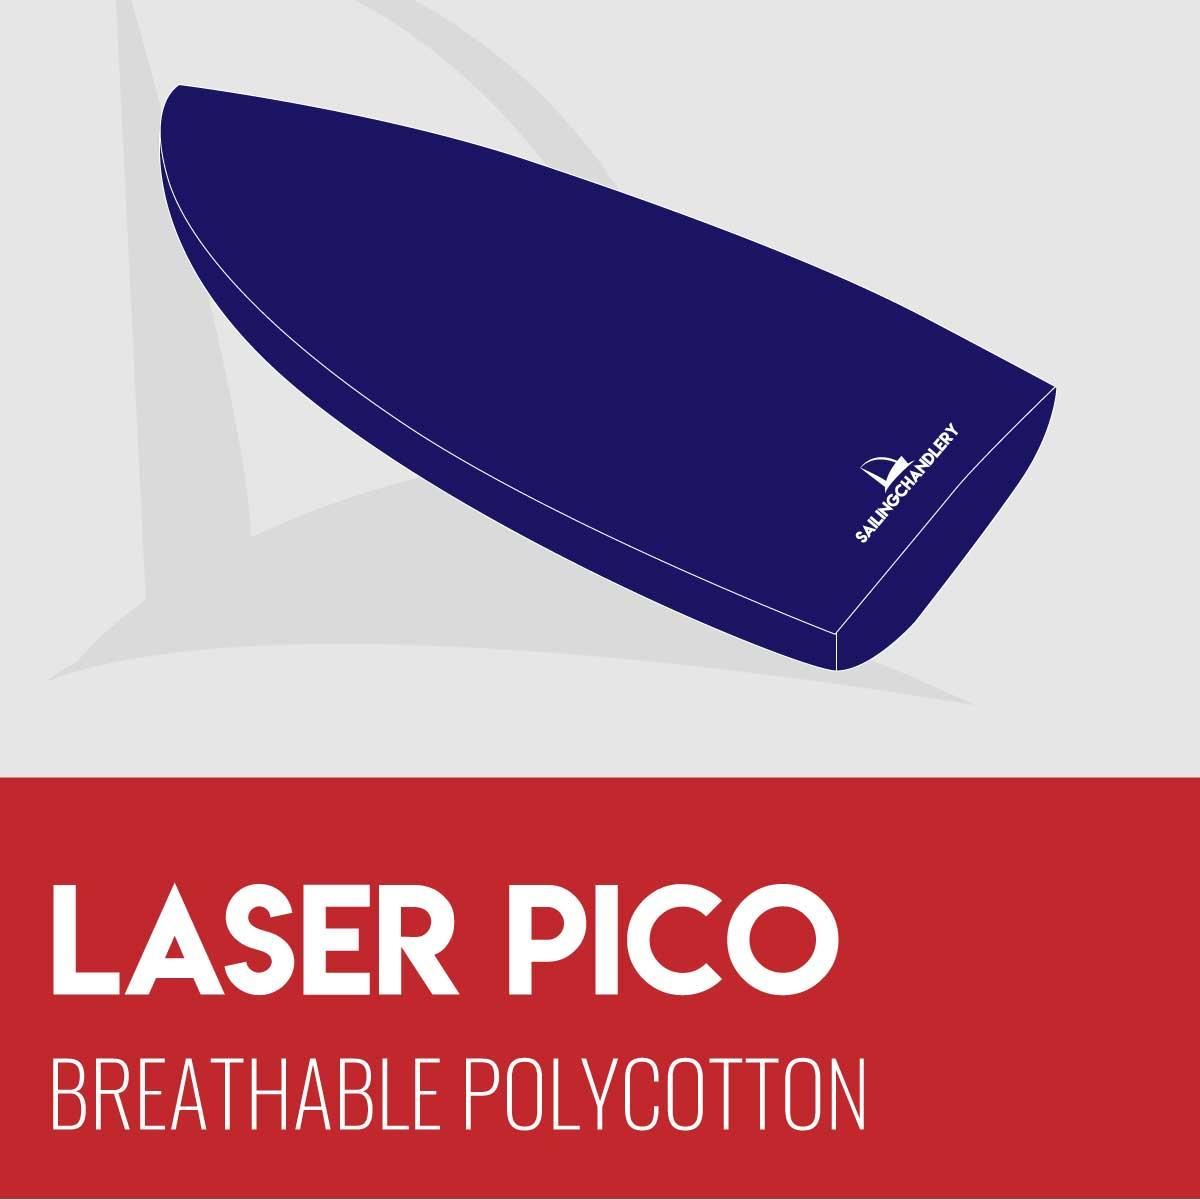 Pico Boat Cover - Breathable Polycotton